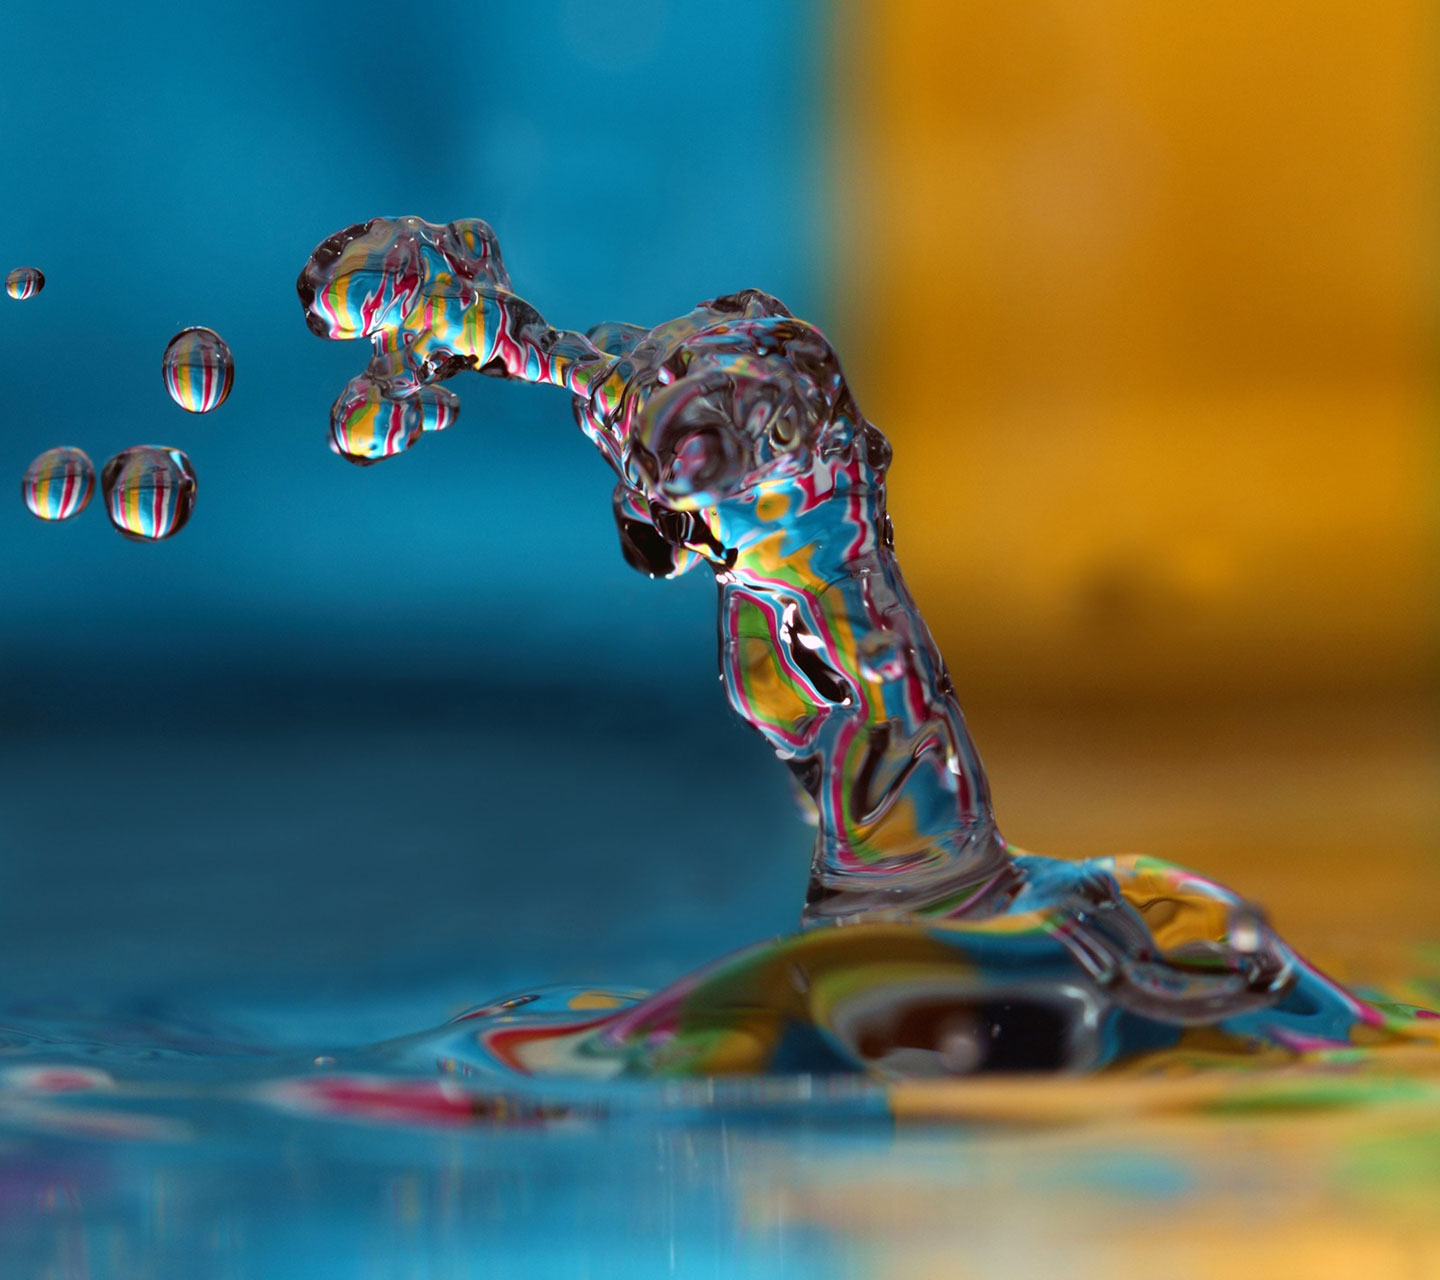 http://3.bp.blogspot.com/-GnmMoHc-ZFA/ULUKlwZ66iI/AAAAAAAALdM/1spVpk6DR6w/s1600/colorful-water-splash-samsung-galaxy-s3-wallpaper.jpg